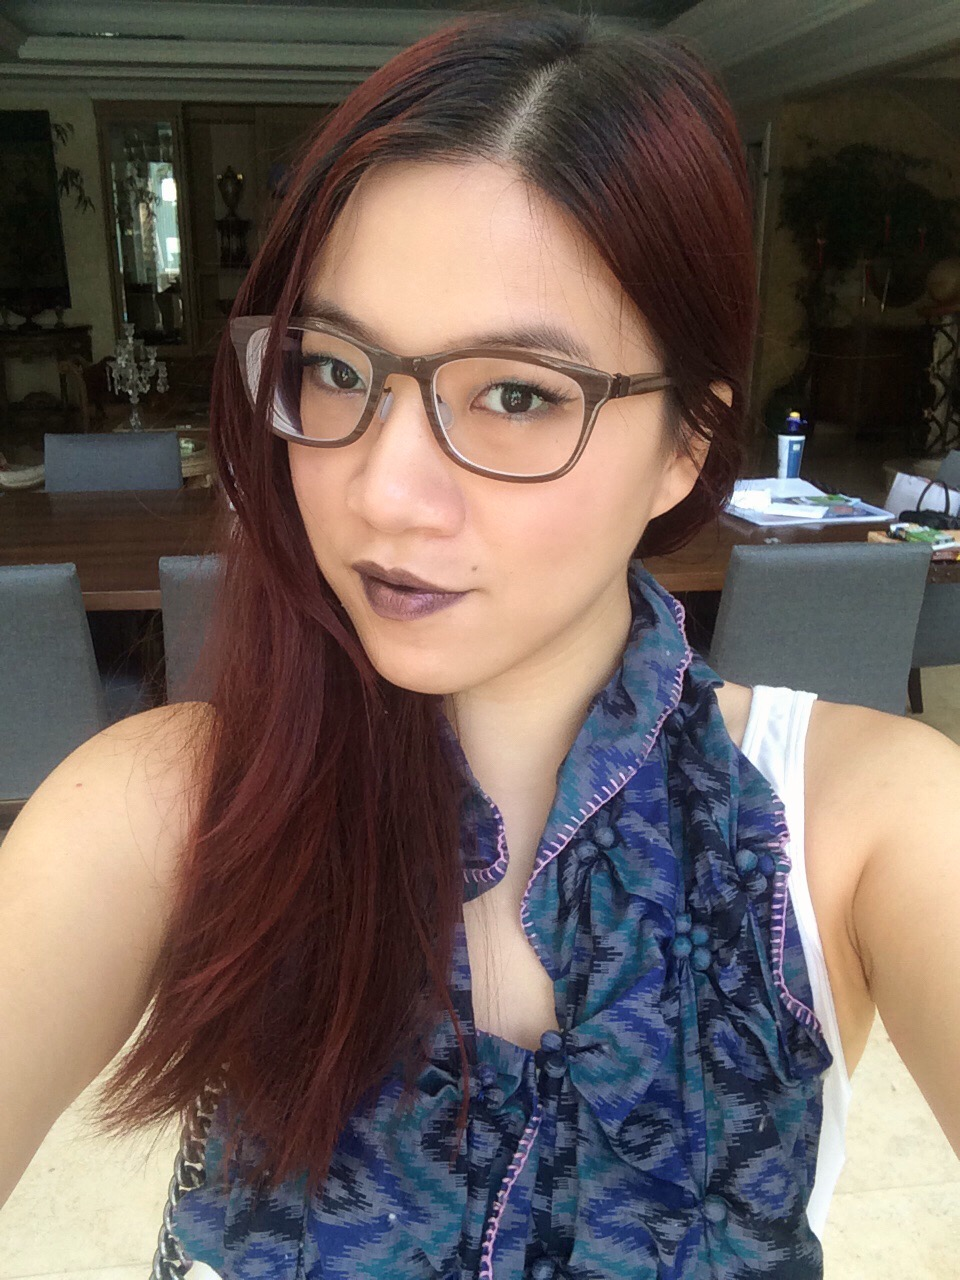 WorkingWithMonolids: Makeup With Glasses